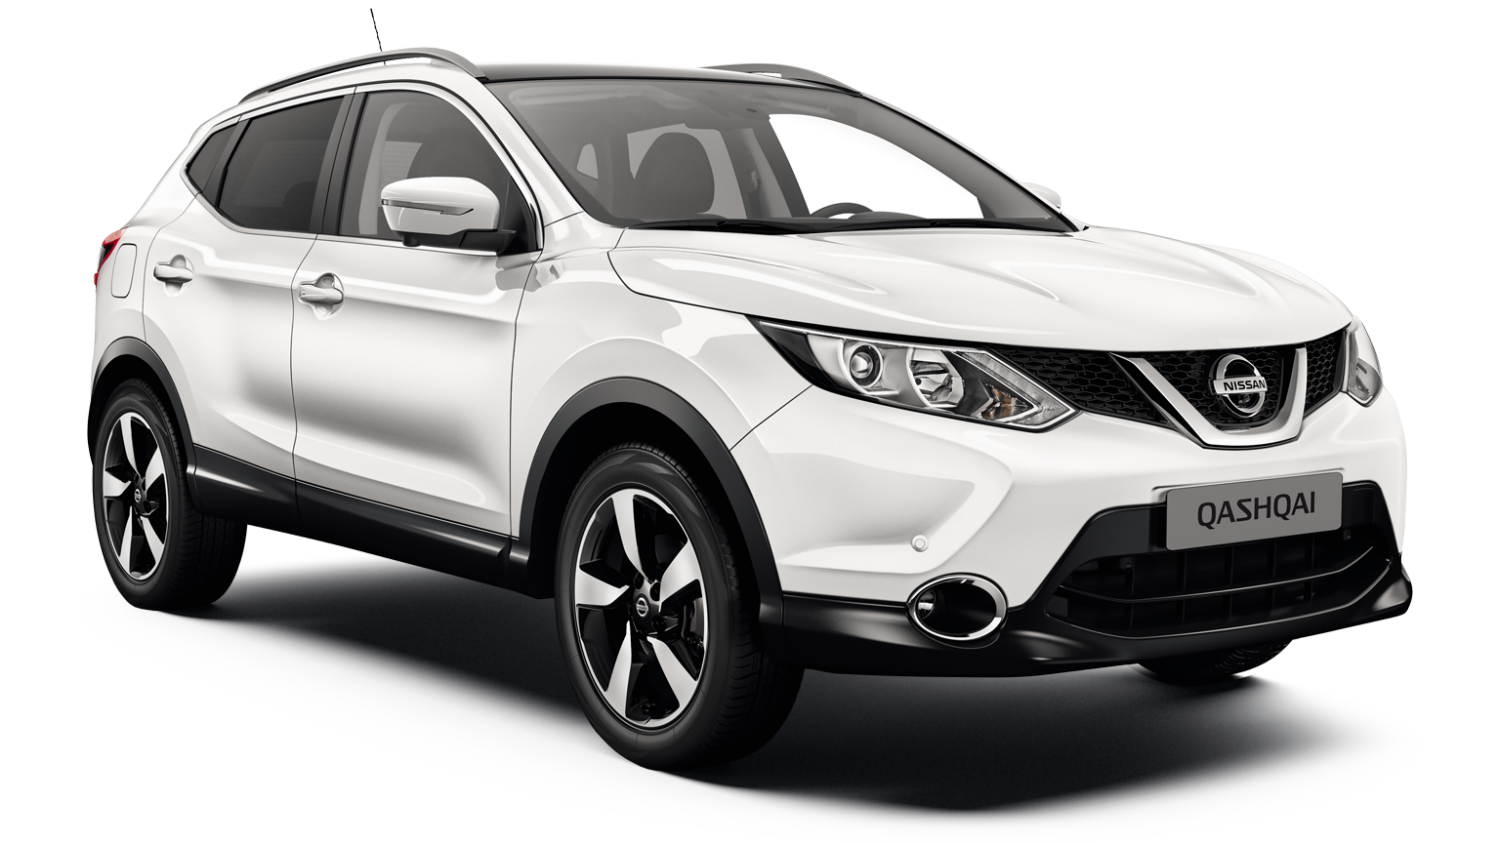 Nissan Qashqai Black Edition - 3/4 front view